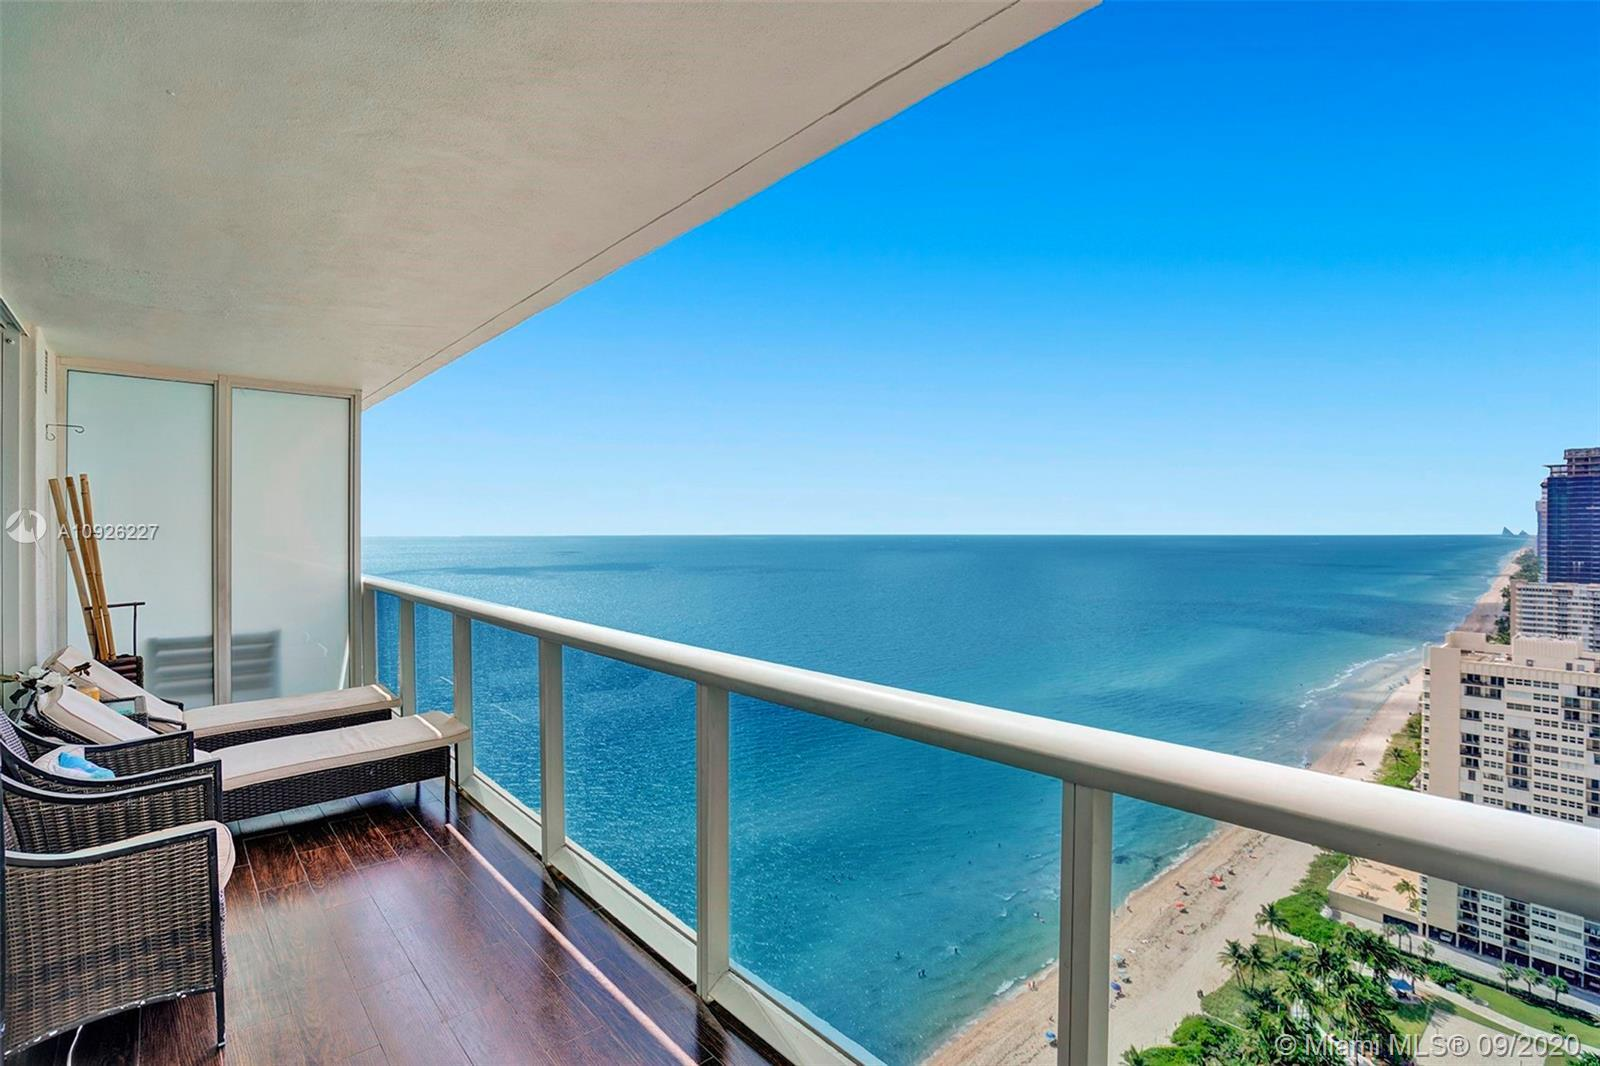 BEAUTIFUL, OCEANFRONT LUXURY 2BED +DEN/3 BATH, BREATHTAKING VIEWS FROM EVERY ROOM, DIRECT OCEAN VIEW